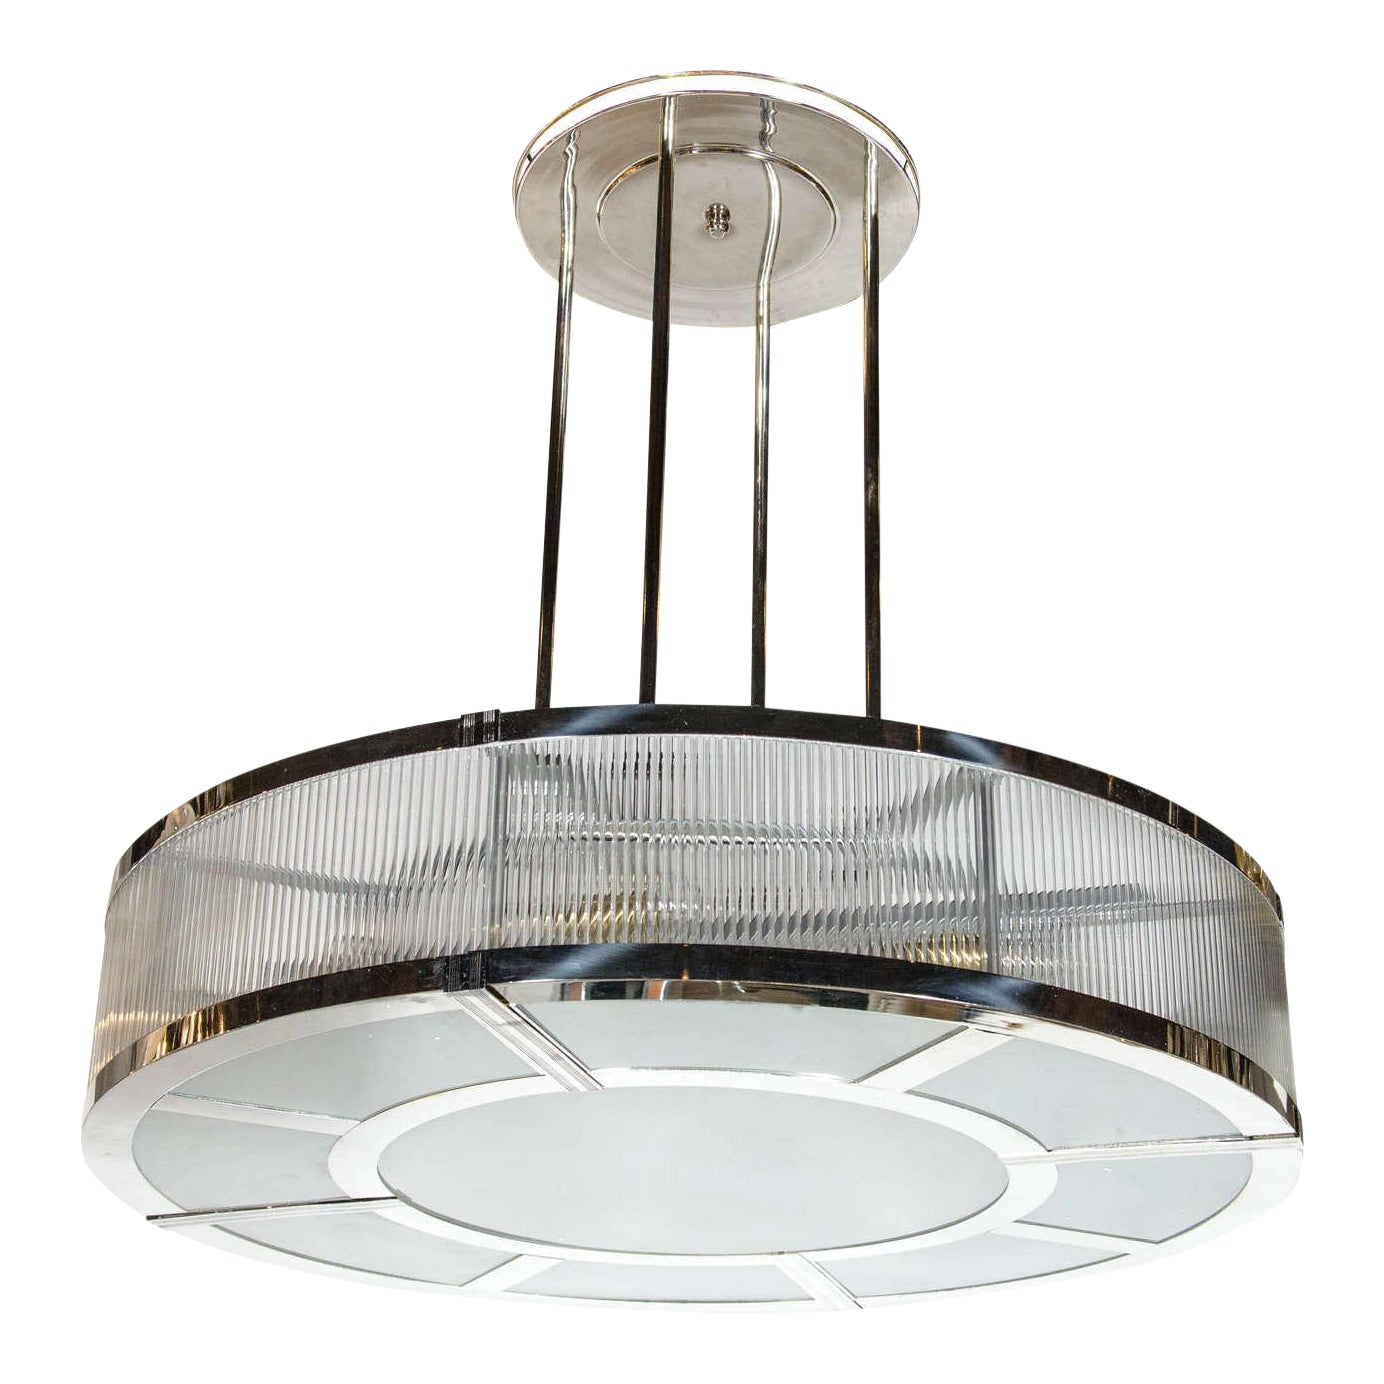 Exceptional streamline art deco style circular chandelier in polished nickel glass decaso